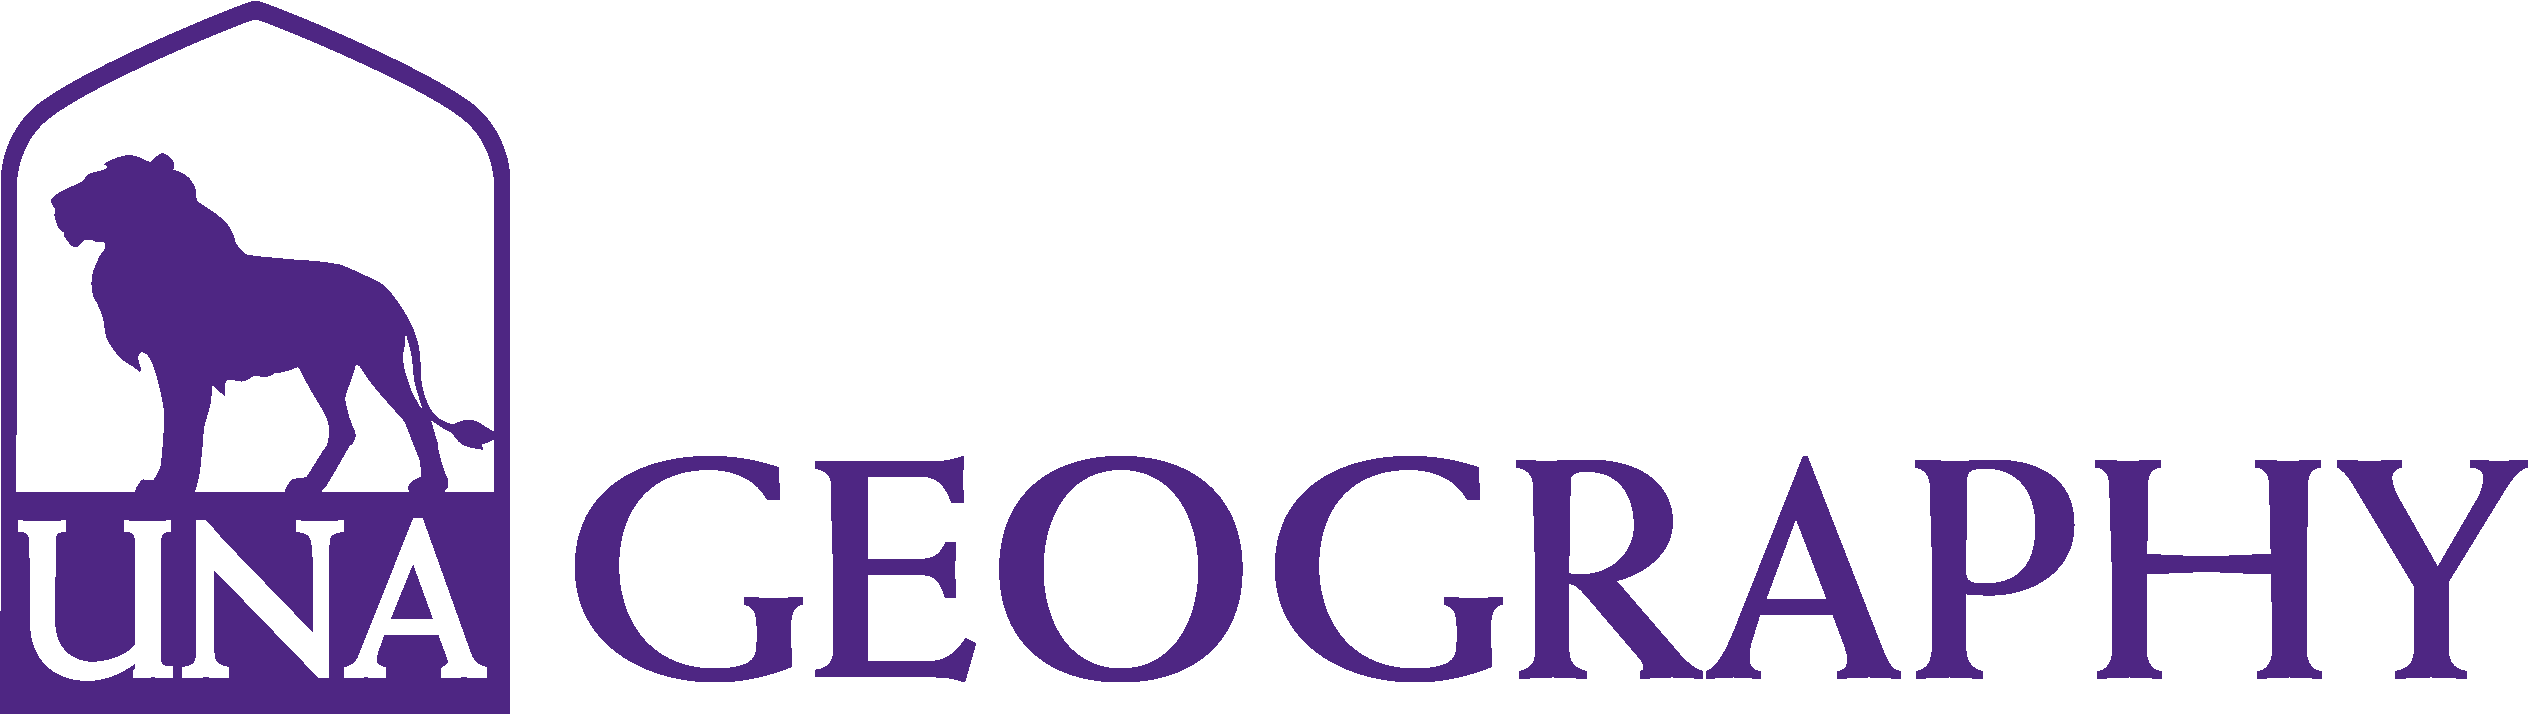 College of Arts and Sciences - Geography Logo - Purple - Version 3